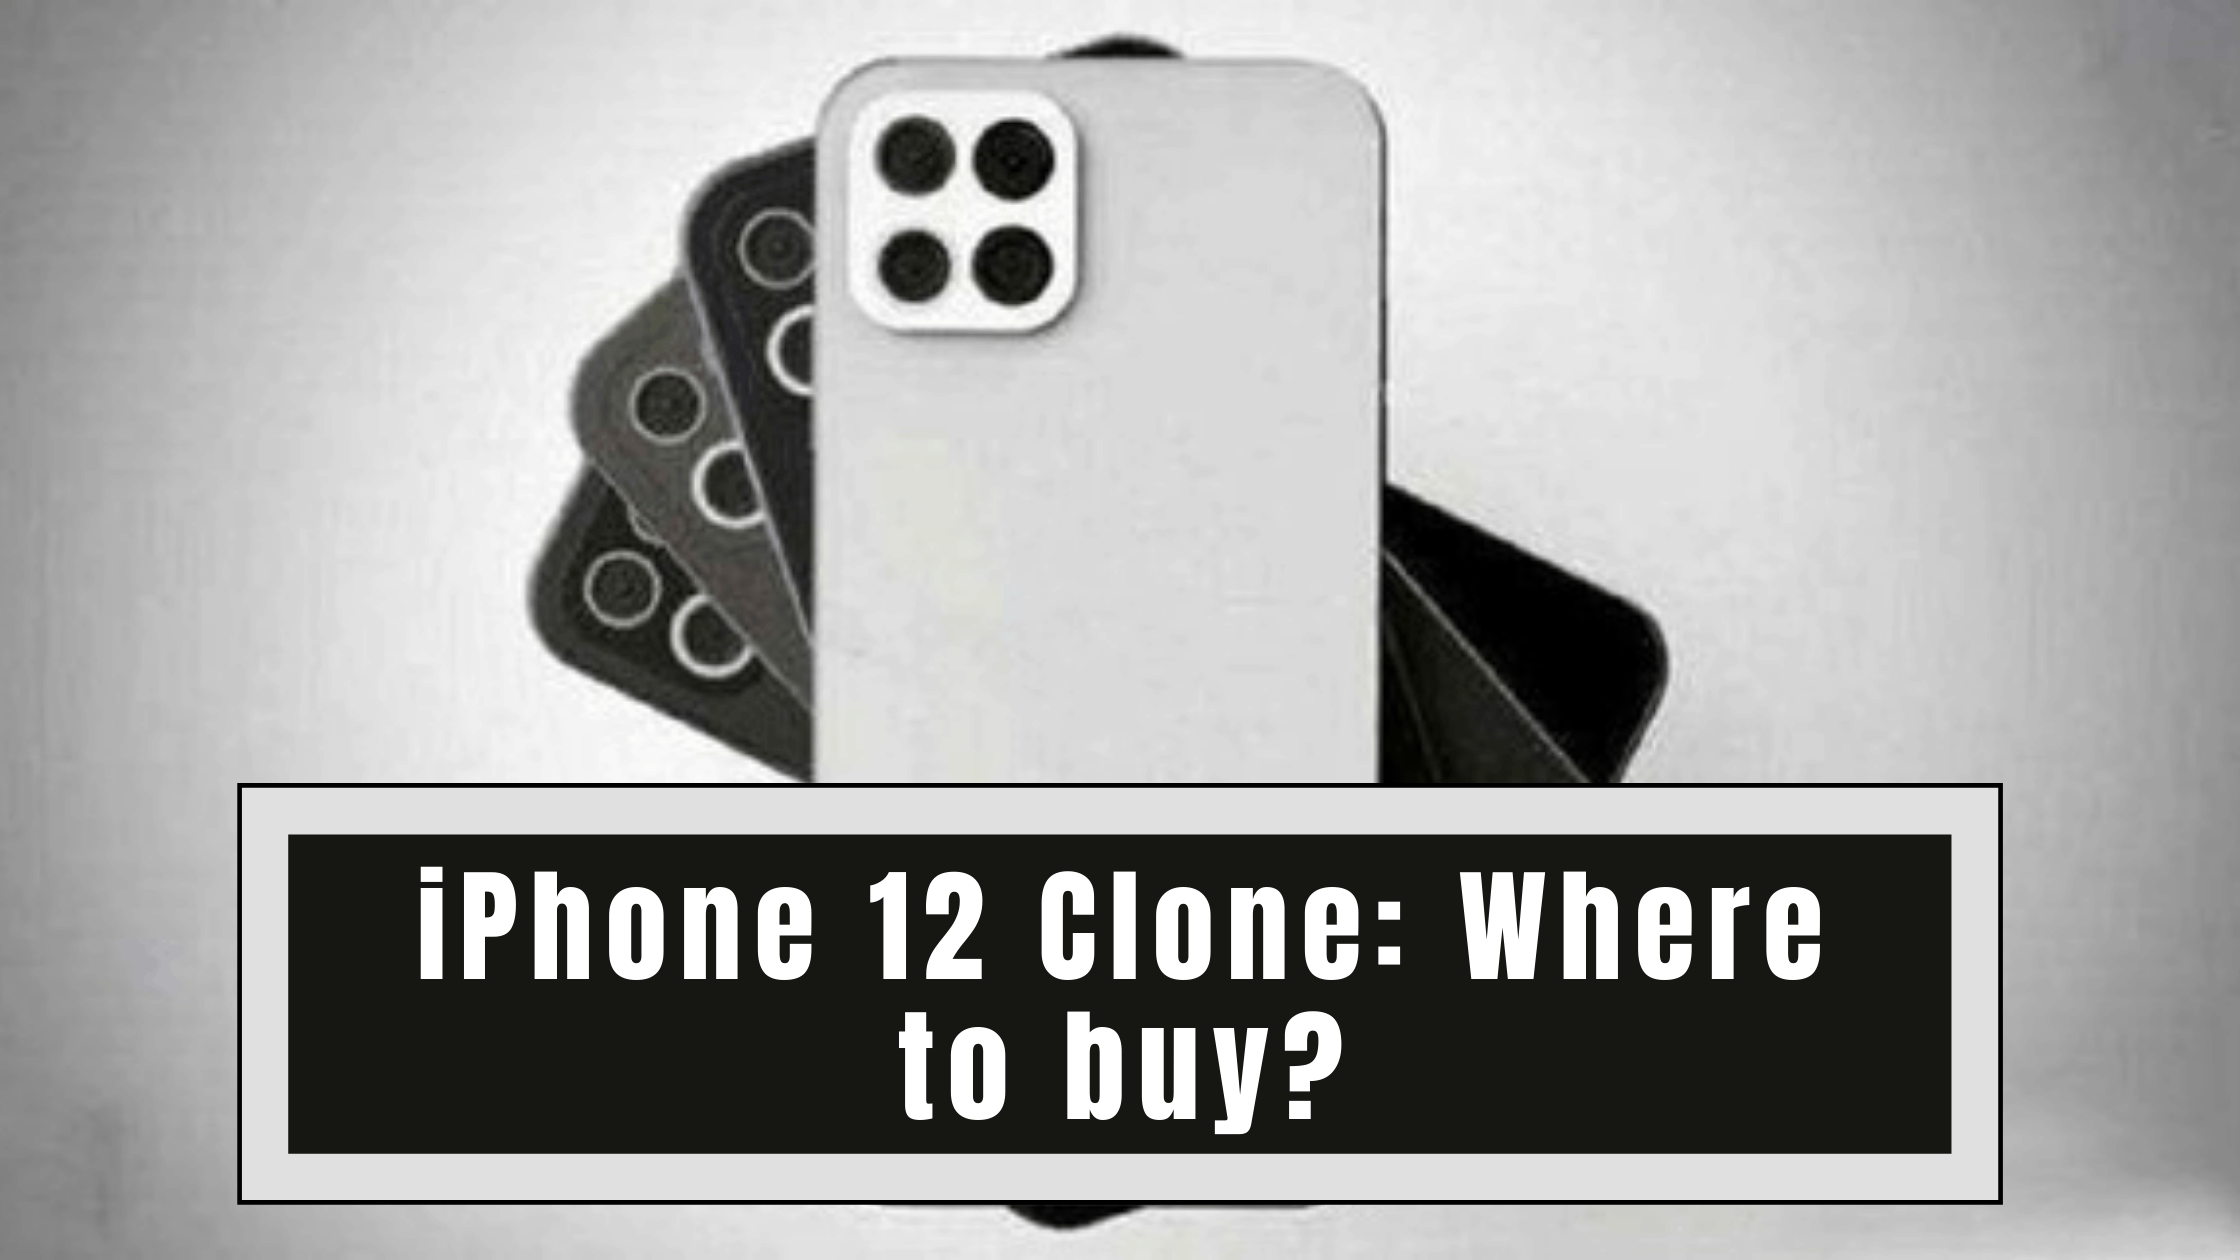 iPhone 12 Clone: Where to buy